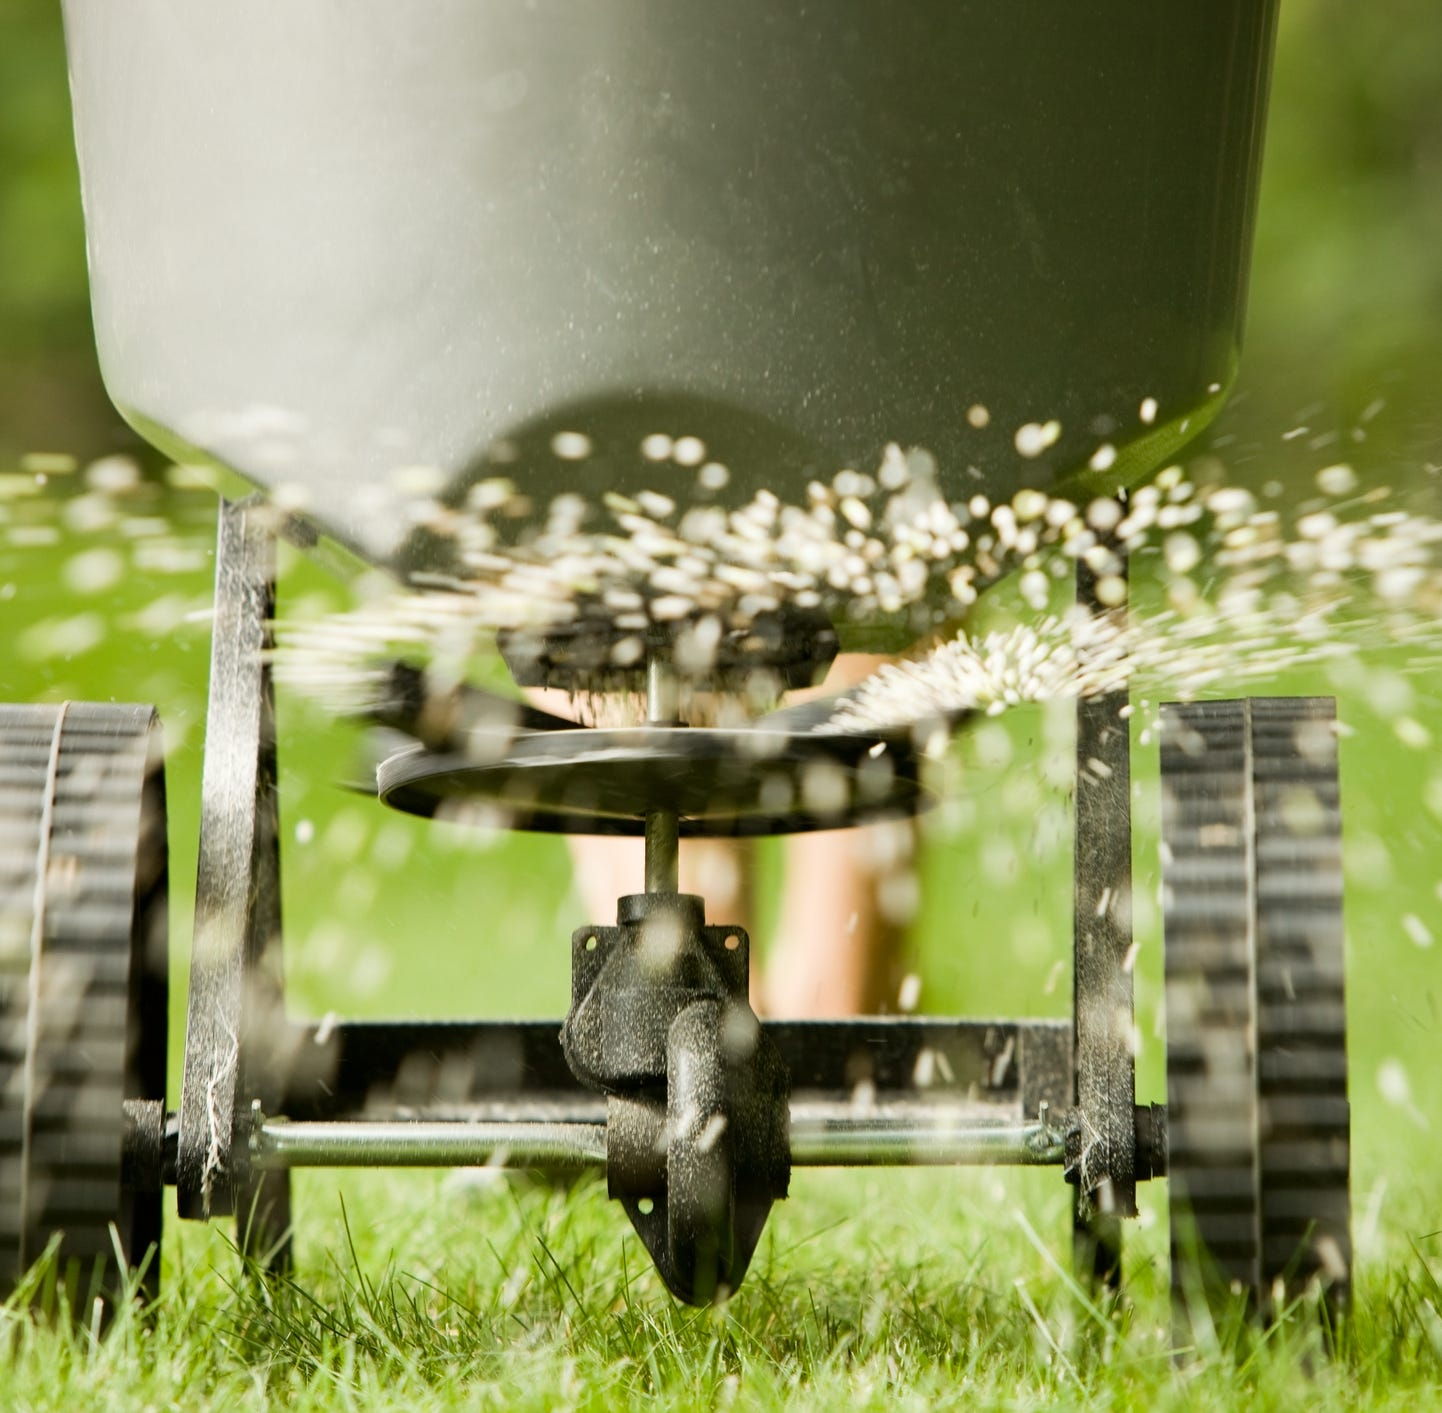 Gardening: It's time to fertilize